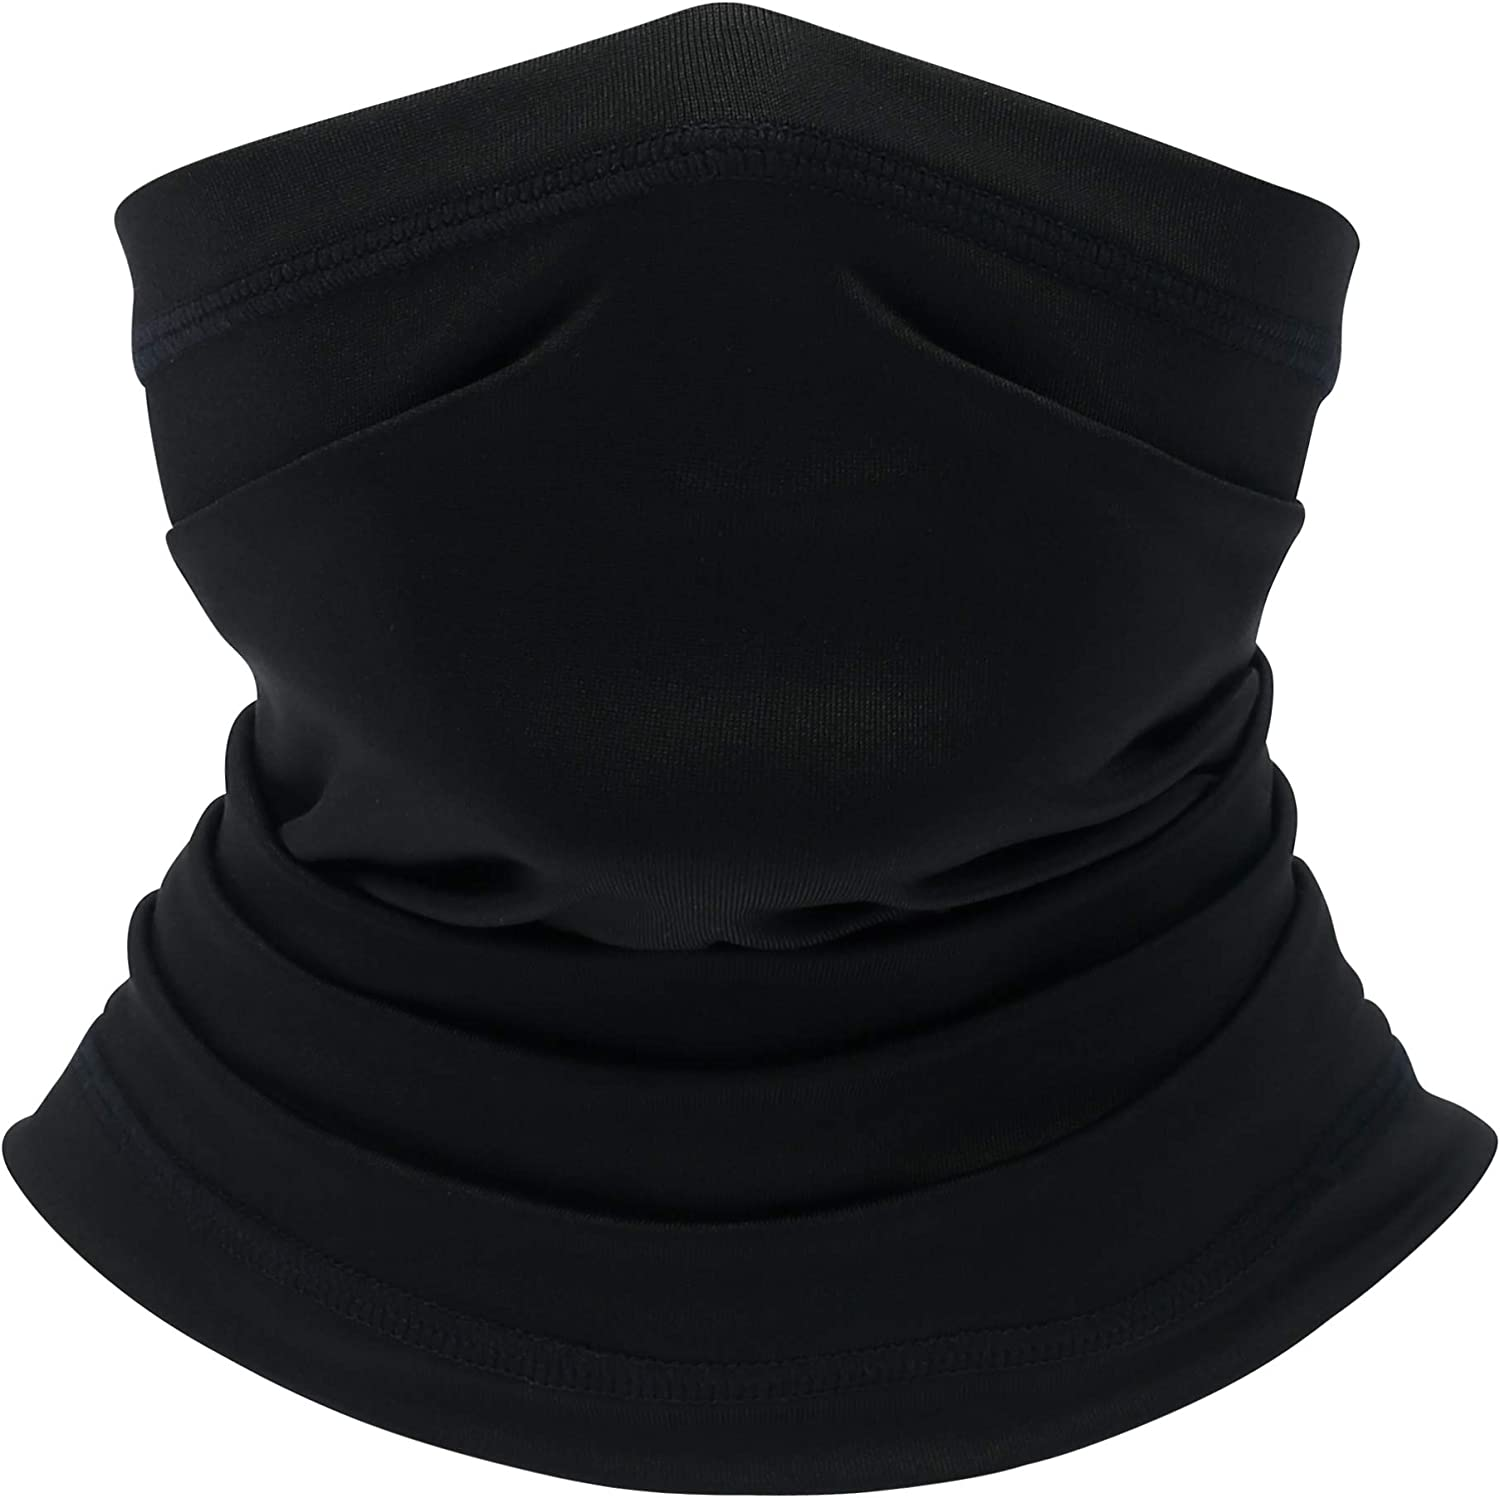 Cooling Neck Gaiter Face Scarf Sun UV /& Windproof Neck Cover Face Mask